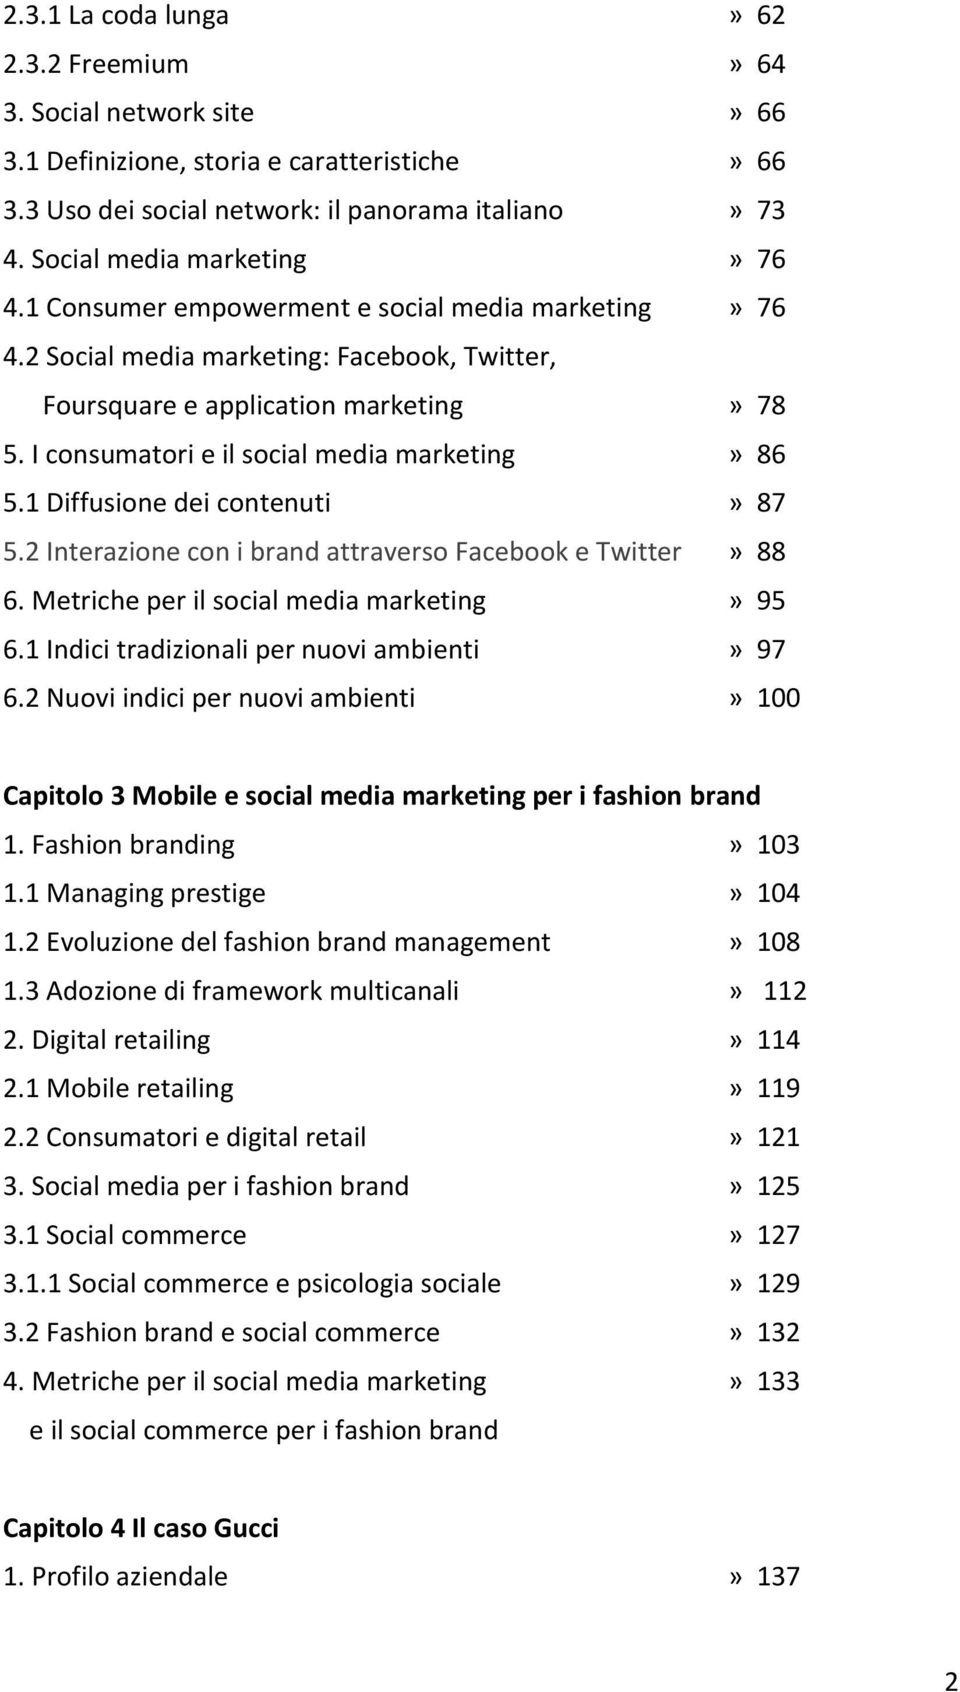 I consumatori e il social media marketing» 86 5.1 Diffusione dei contenuti» 87 5.2 Interazione con i brand attraverso Facebook e Twitter» 88 6. Metriche per il social media marketing» 95 6.